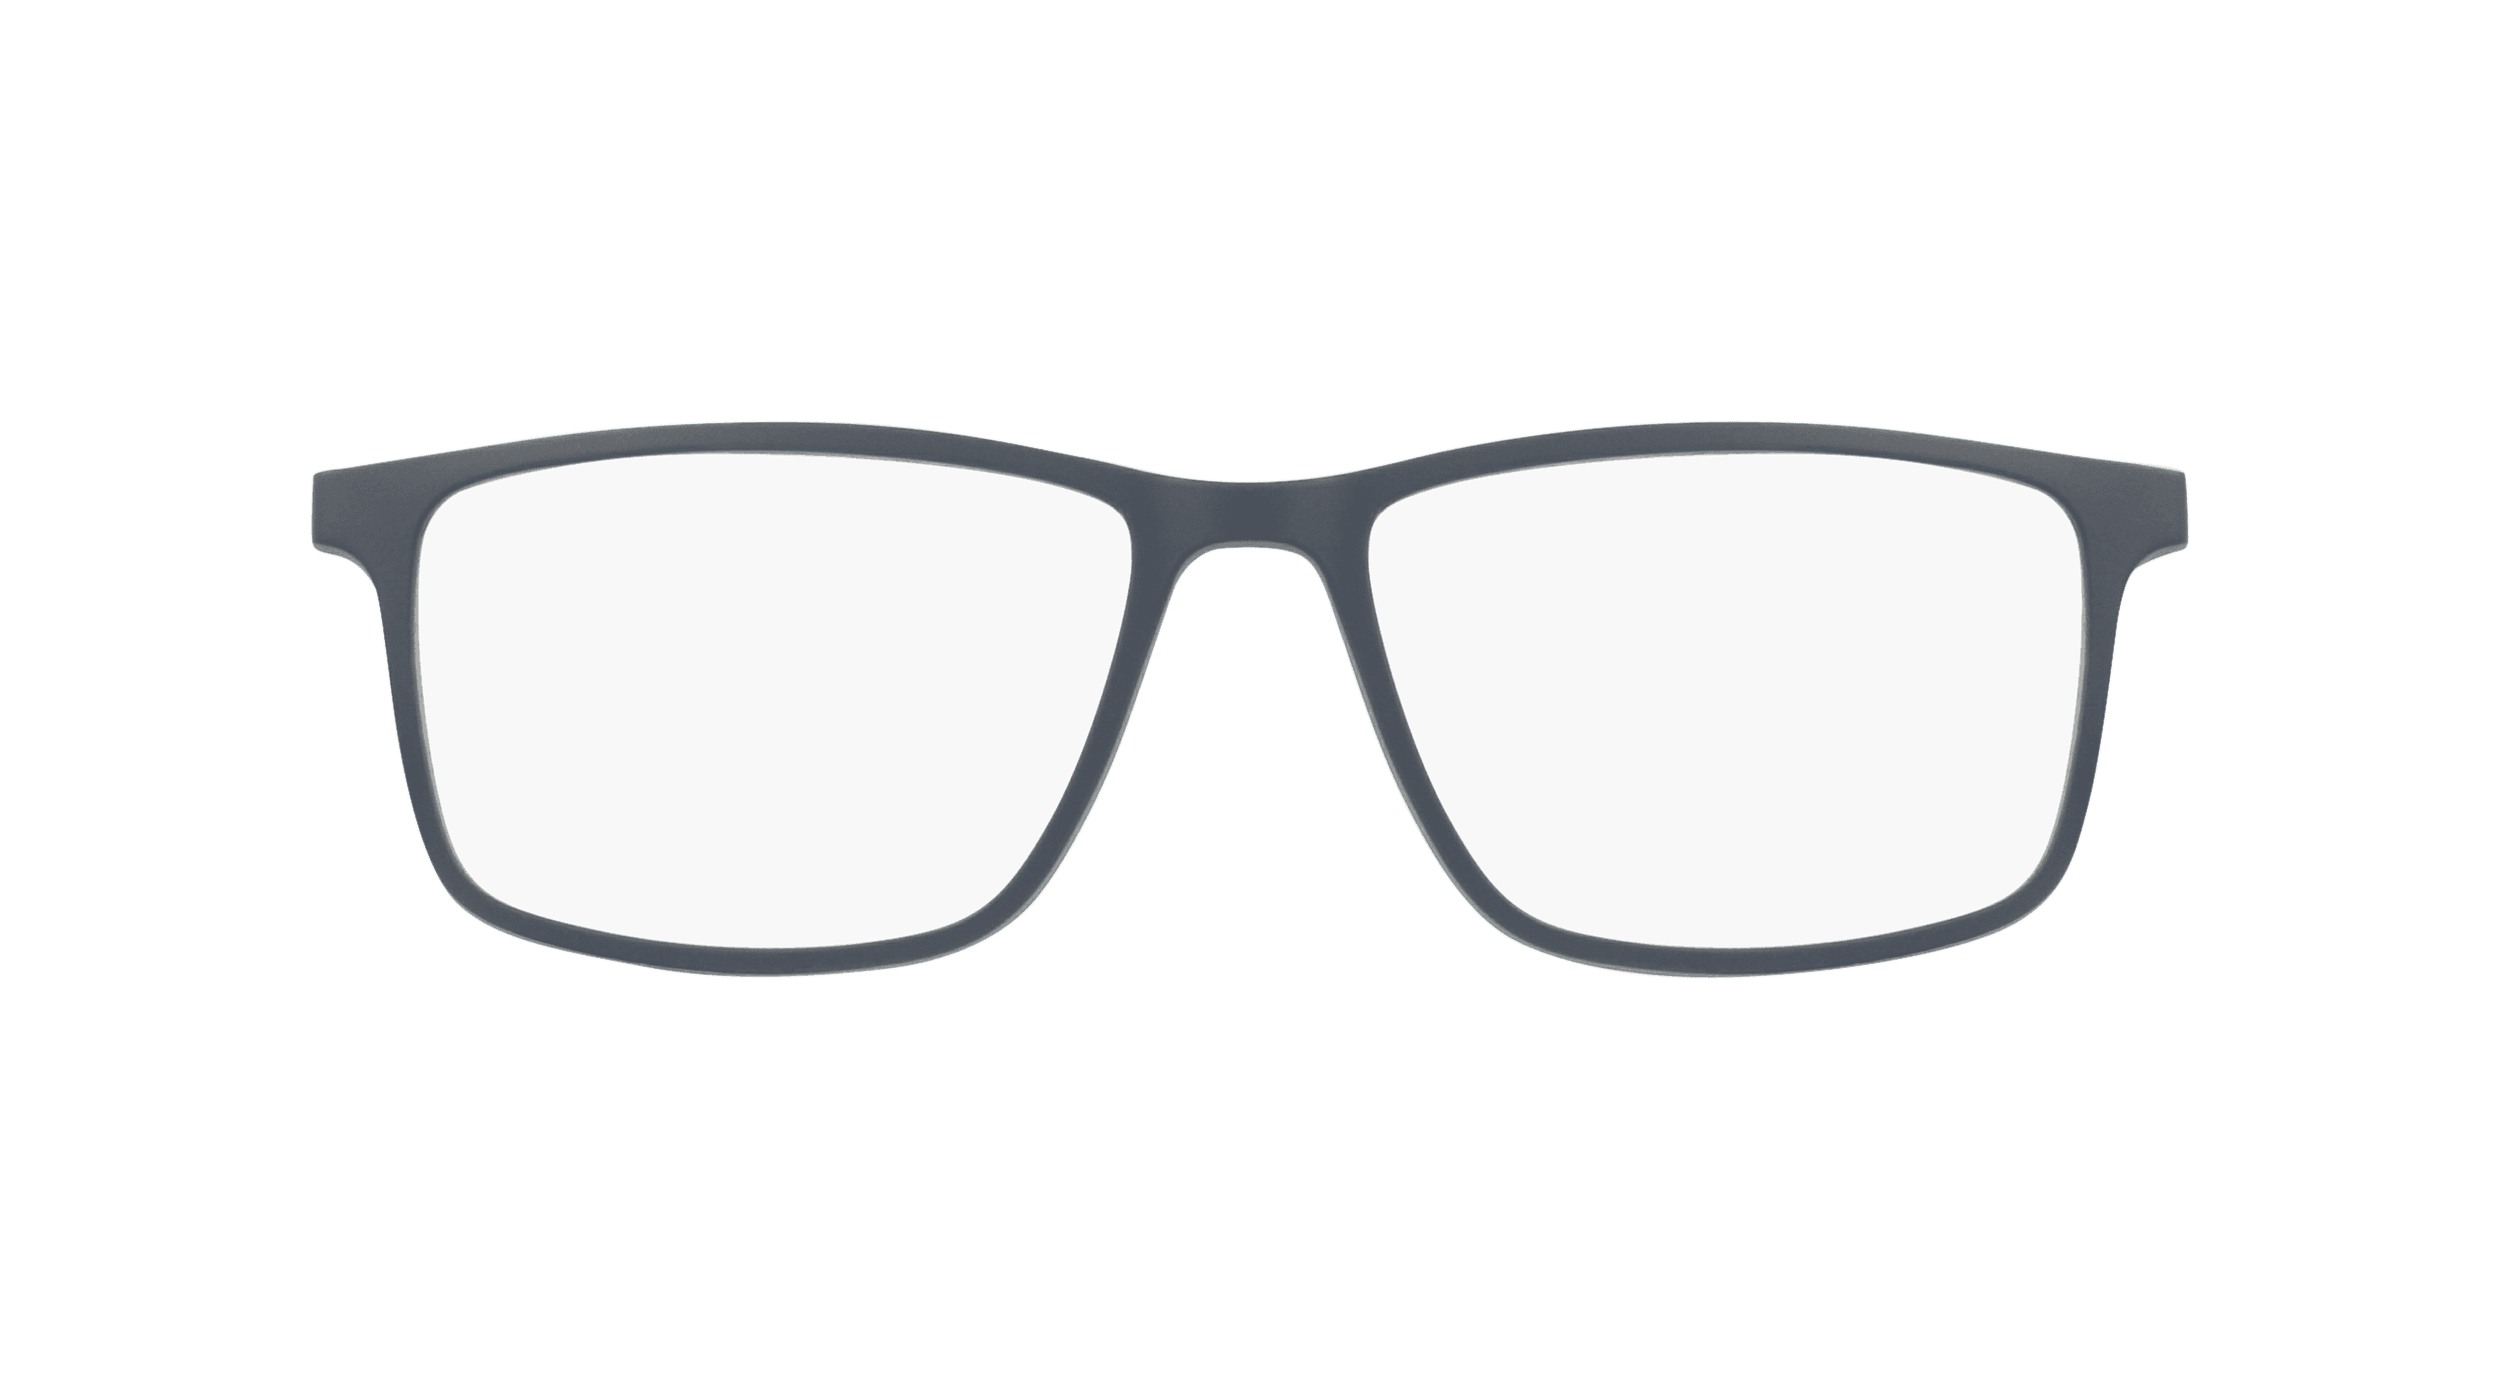 afflelou/france/products/smart_clip/clips_glasses/07630036457054.png